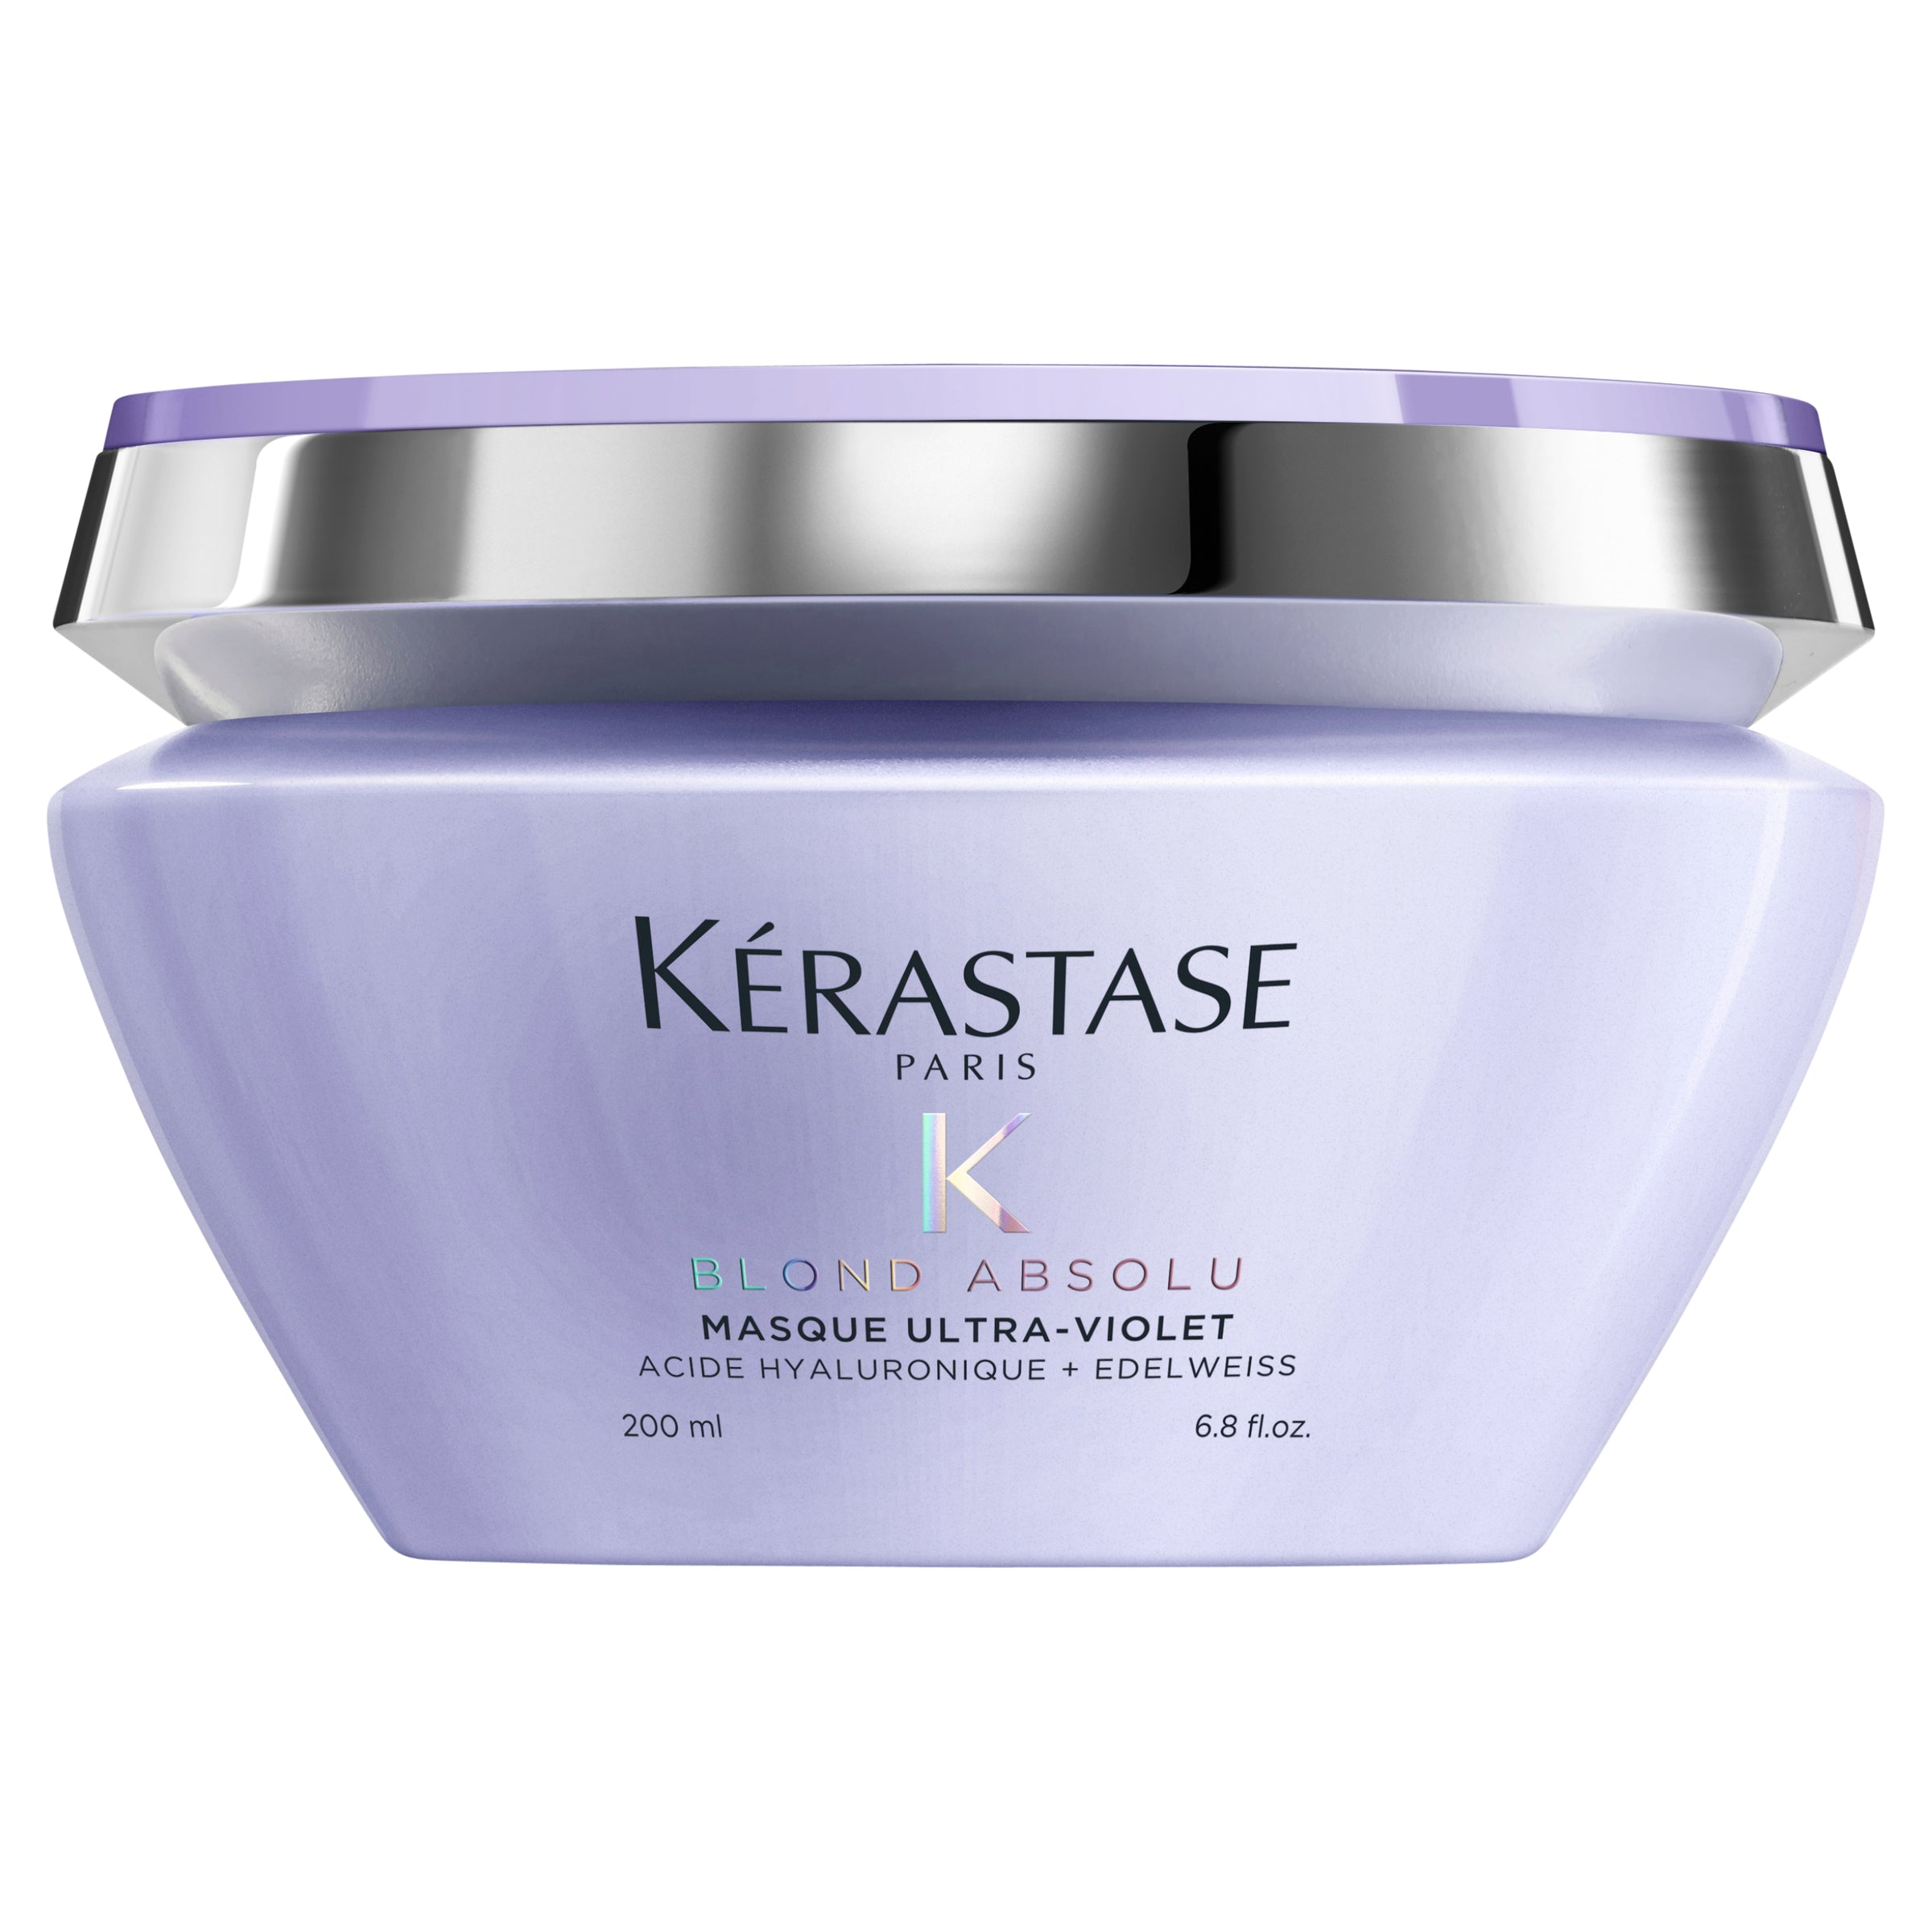 Kérastase Blond Masque Ultra-Violet 200ml